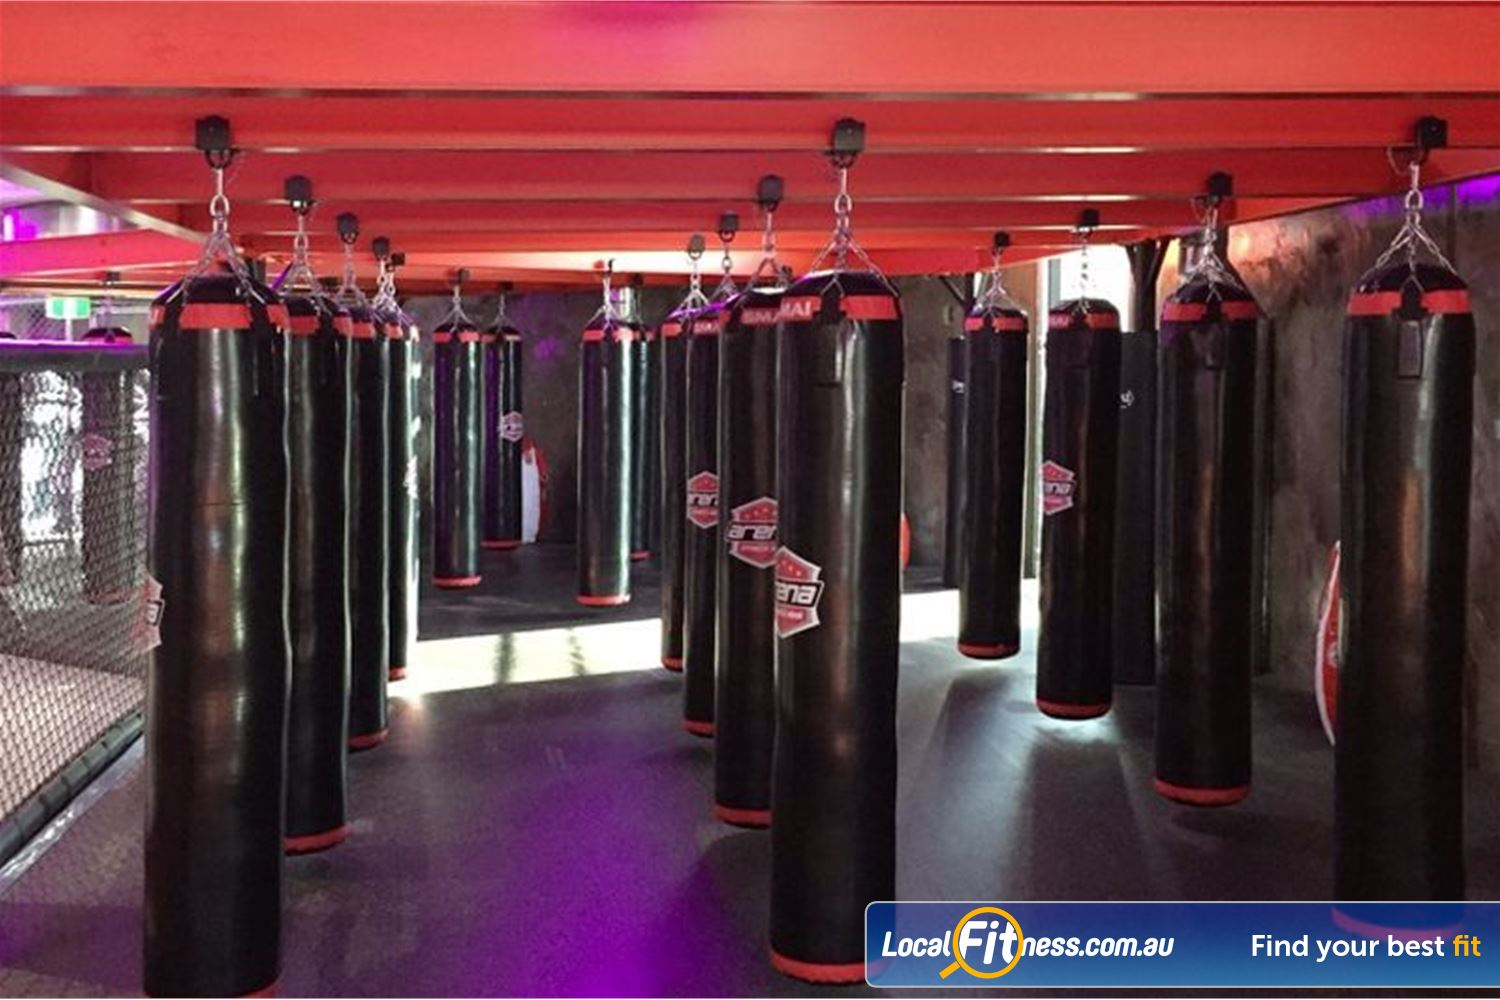 Goodlife Health Clubs Near Meadowbrook Fully equipped Springwood boxing and kickboxing setup.